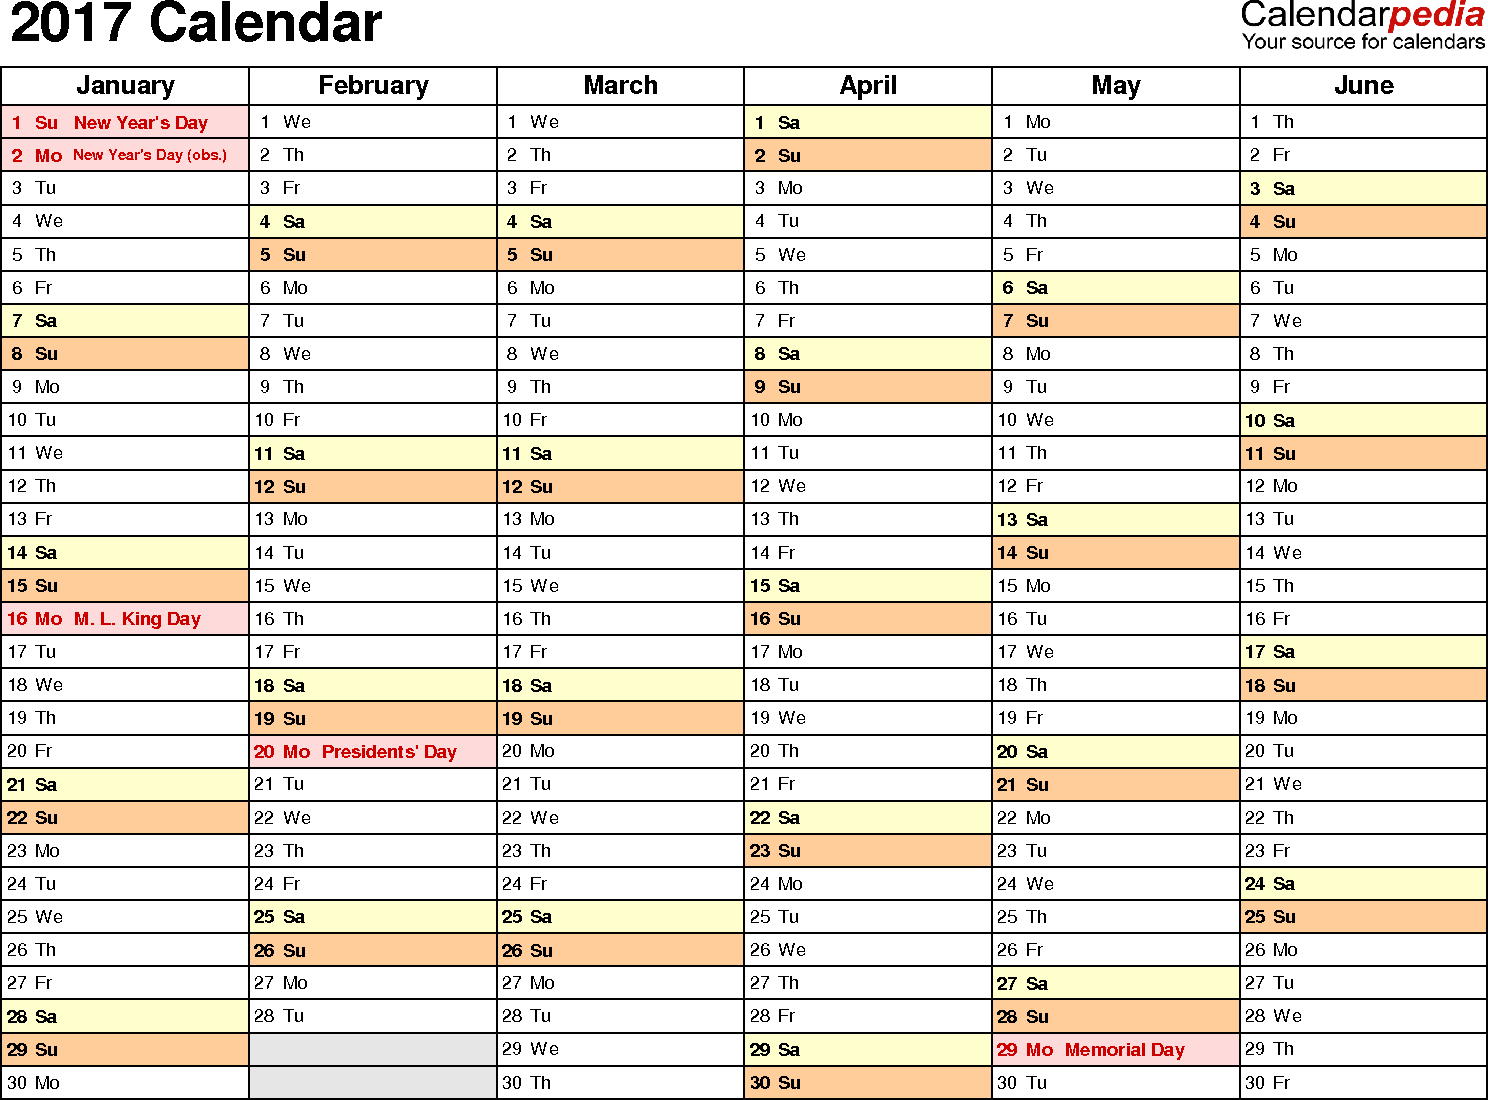 Ediblewildsus  Prepossessing  Calendar  Download  Free Printable Excel Templates Xls With Glamorous Template   Calendar For Excel Months Horizontally  Pages Landscape Orientation With Beauteous Business Templates Excel Also Linear Regression Excel Formula In Addition Frequency Distribution Chart Excel And Excel  Chart As Well As Validation Excel Additionally Excel Recovery Folder From Calendarpediacom With Ediblewildsus  Glamorous  Calendar  Download  Free Printable Excel Templates Xls With Beauteous Template   Calendar For Excel Months Horizontally  Pages Landscape Orientation And Prepossessing Business Templates Excel Also Linear Regression Excel Formula In Addition Frequency Distribution Chart Excel From Calendarpediacom